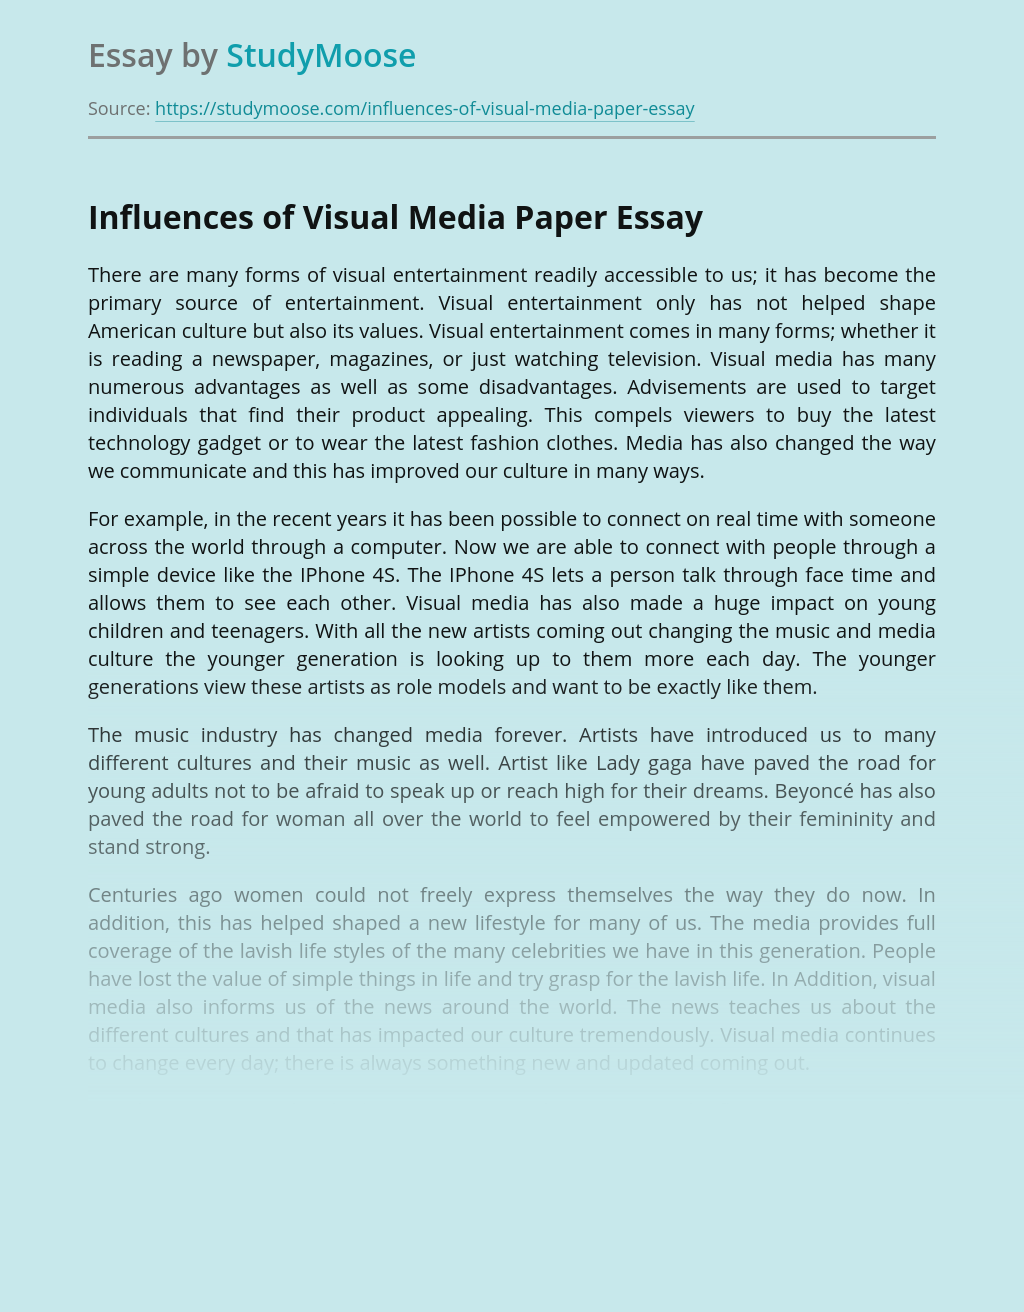 Influences of Visual Media Paper